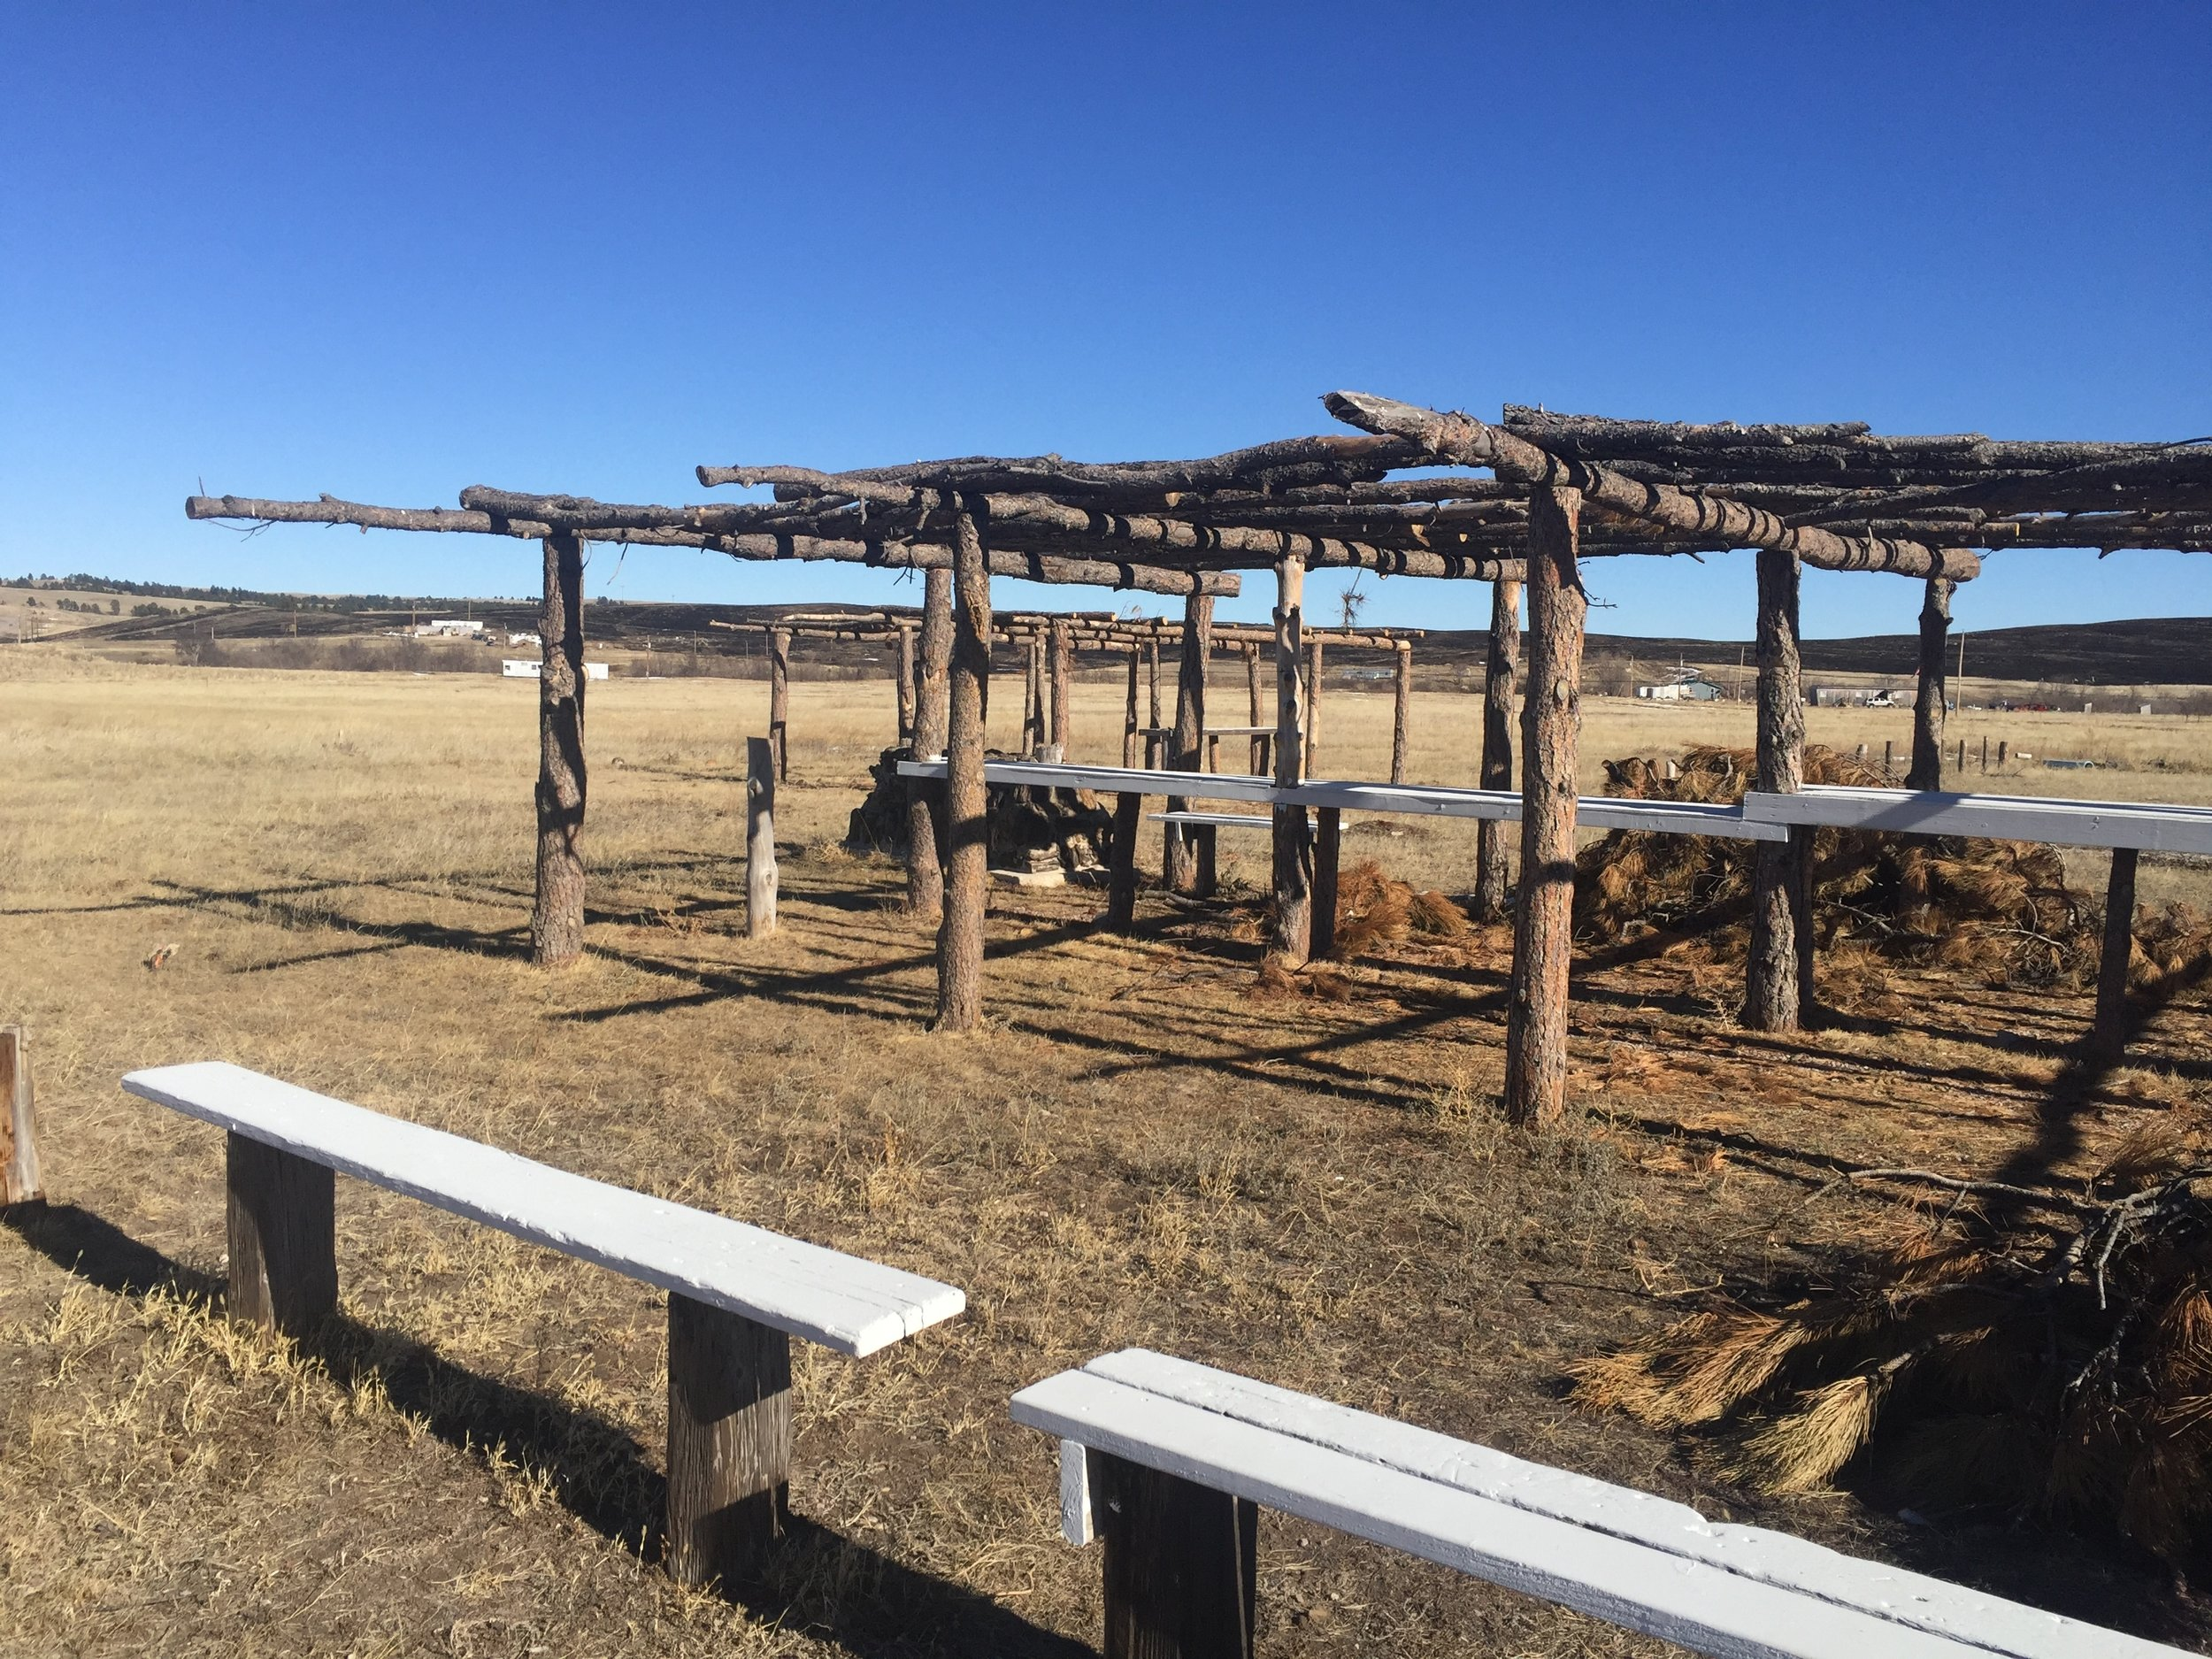 Site of Wounded Knee Massacre